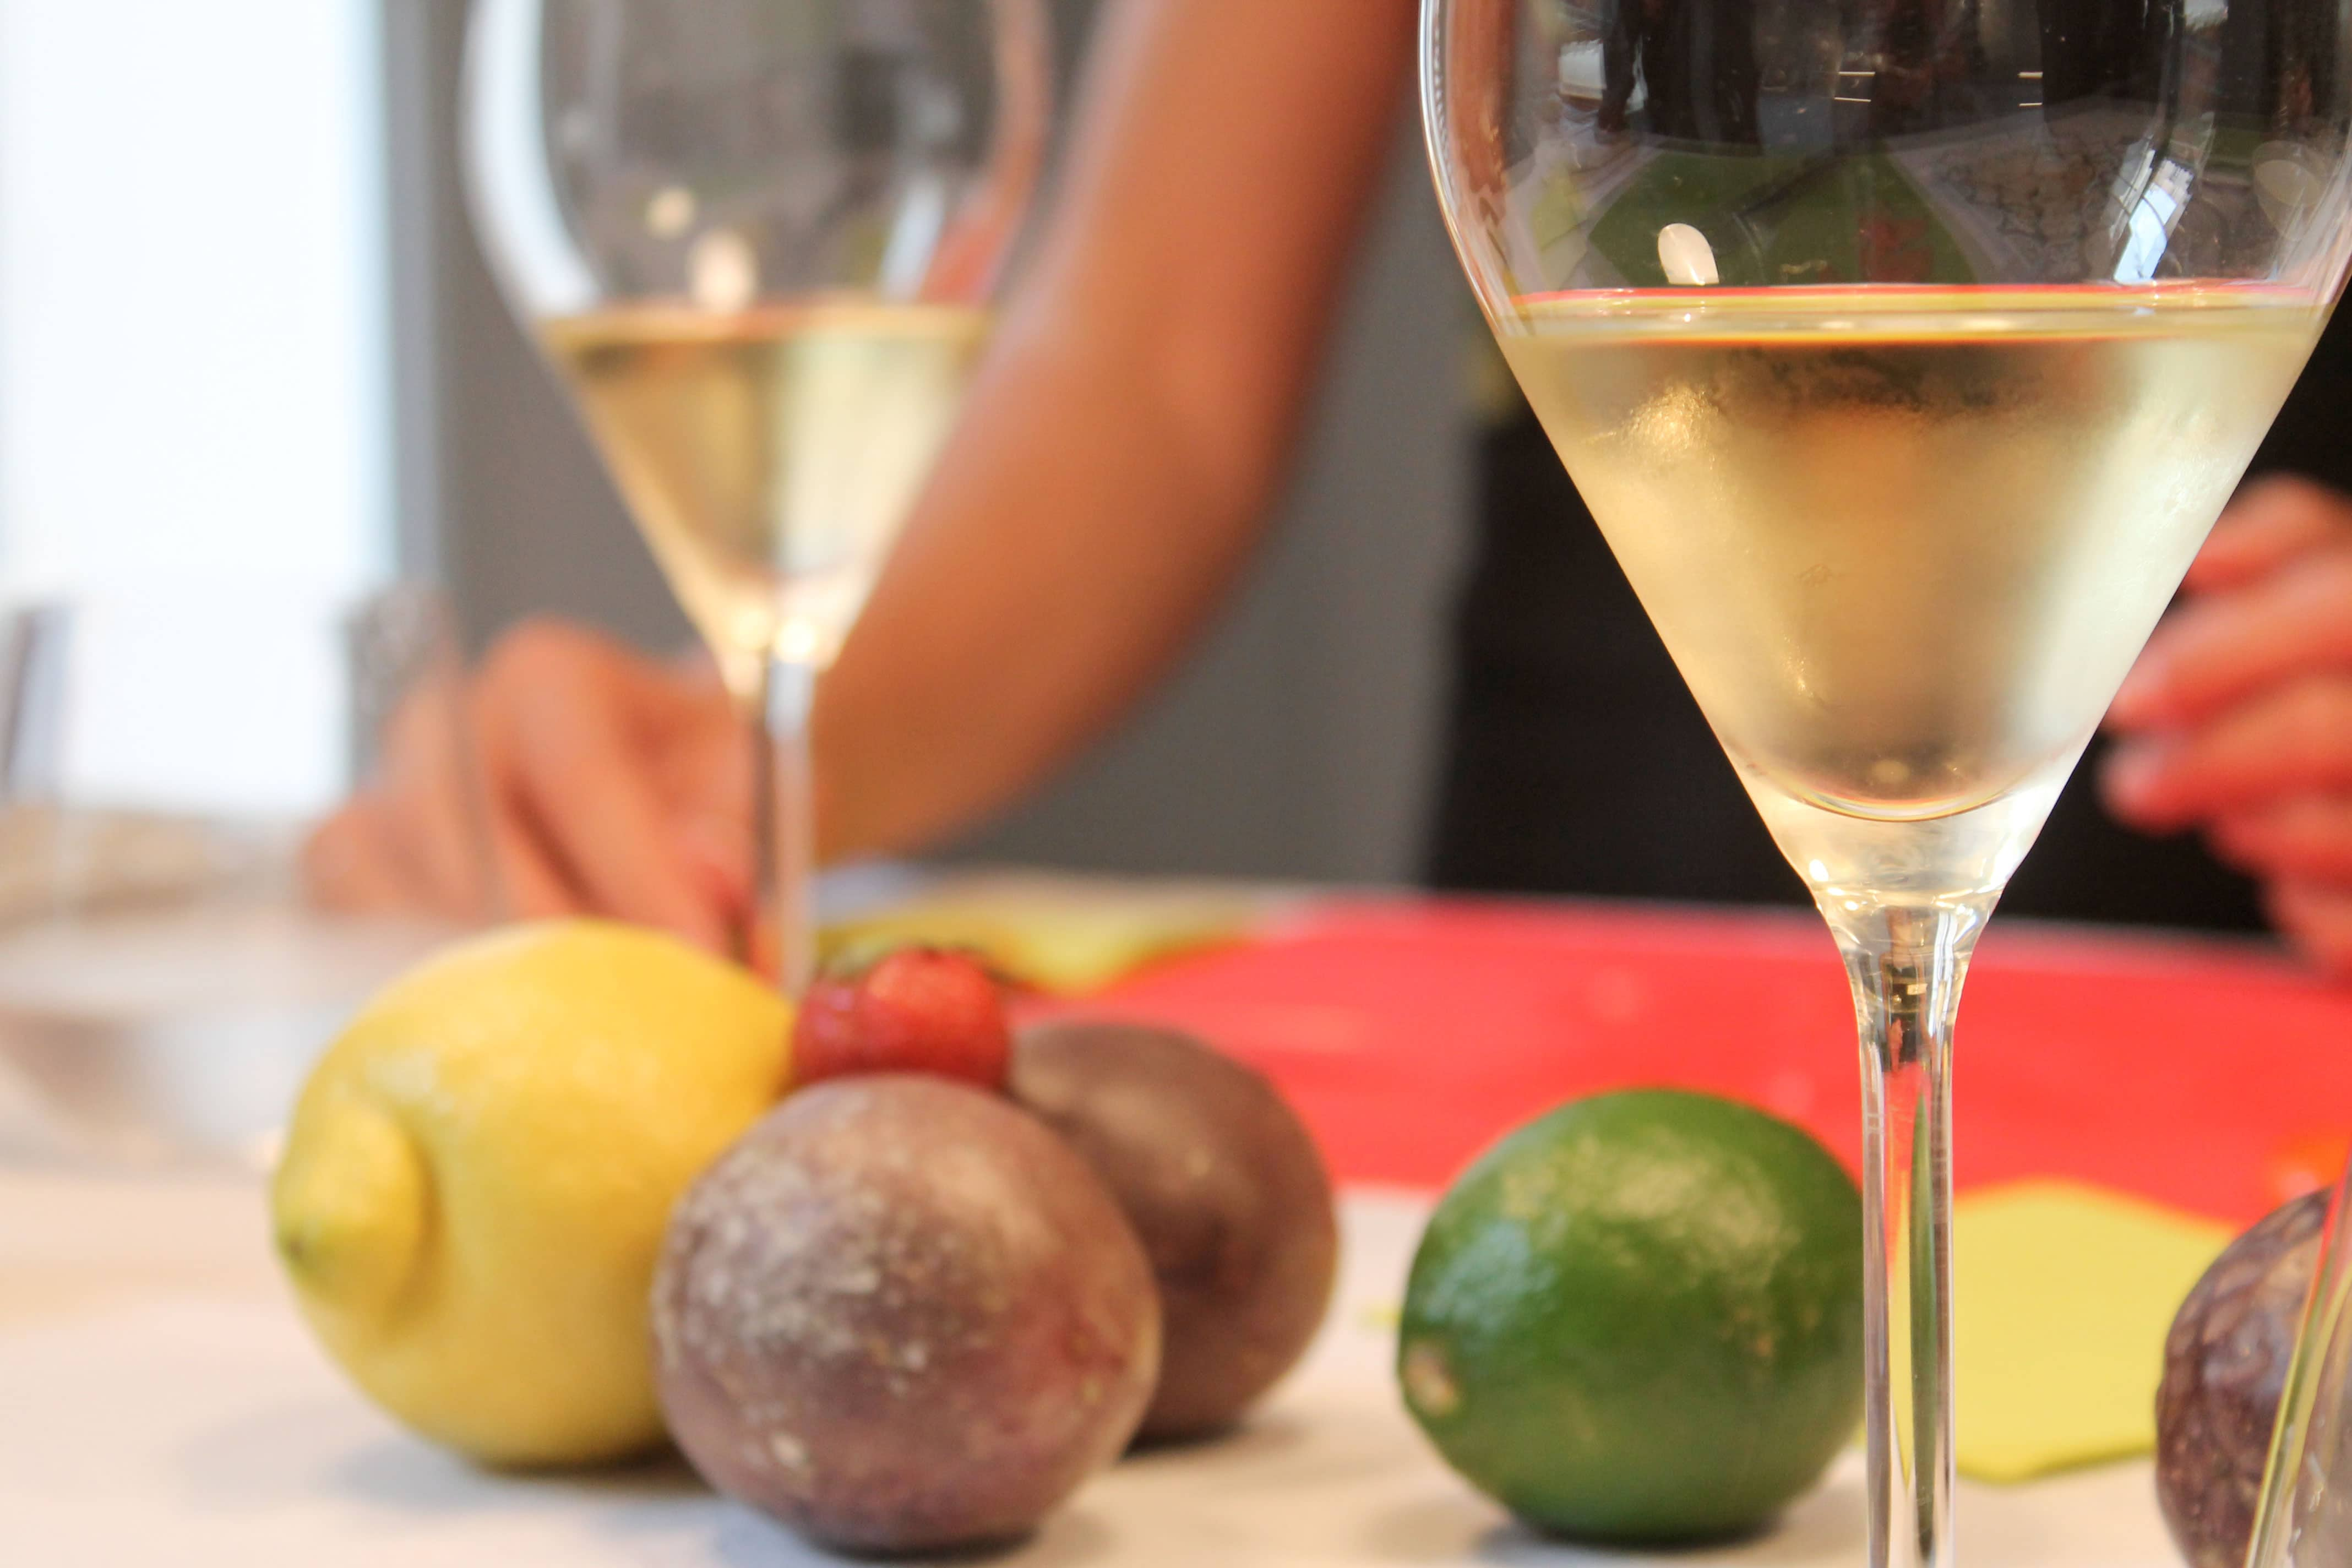 Wine and cooking class, white wine anf fruits